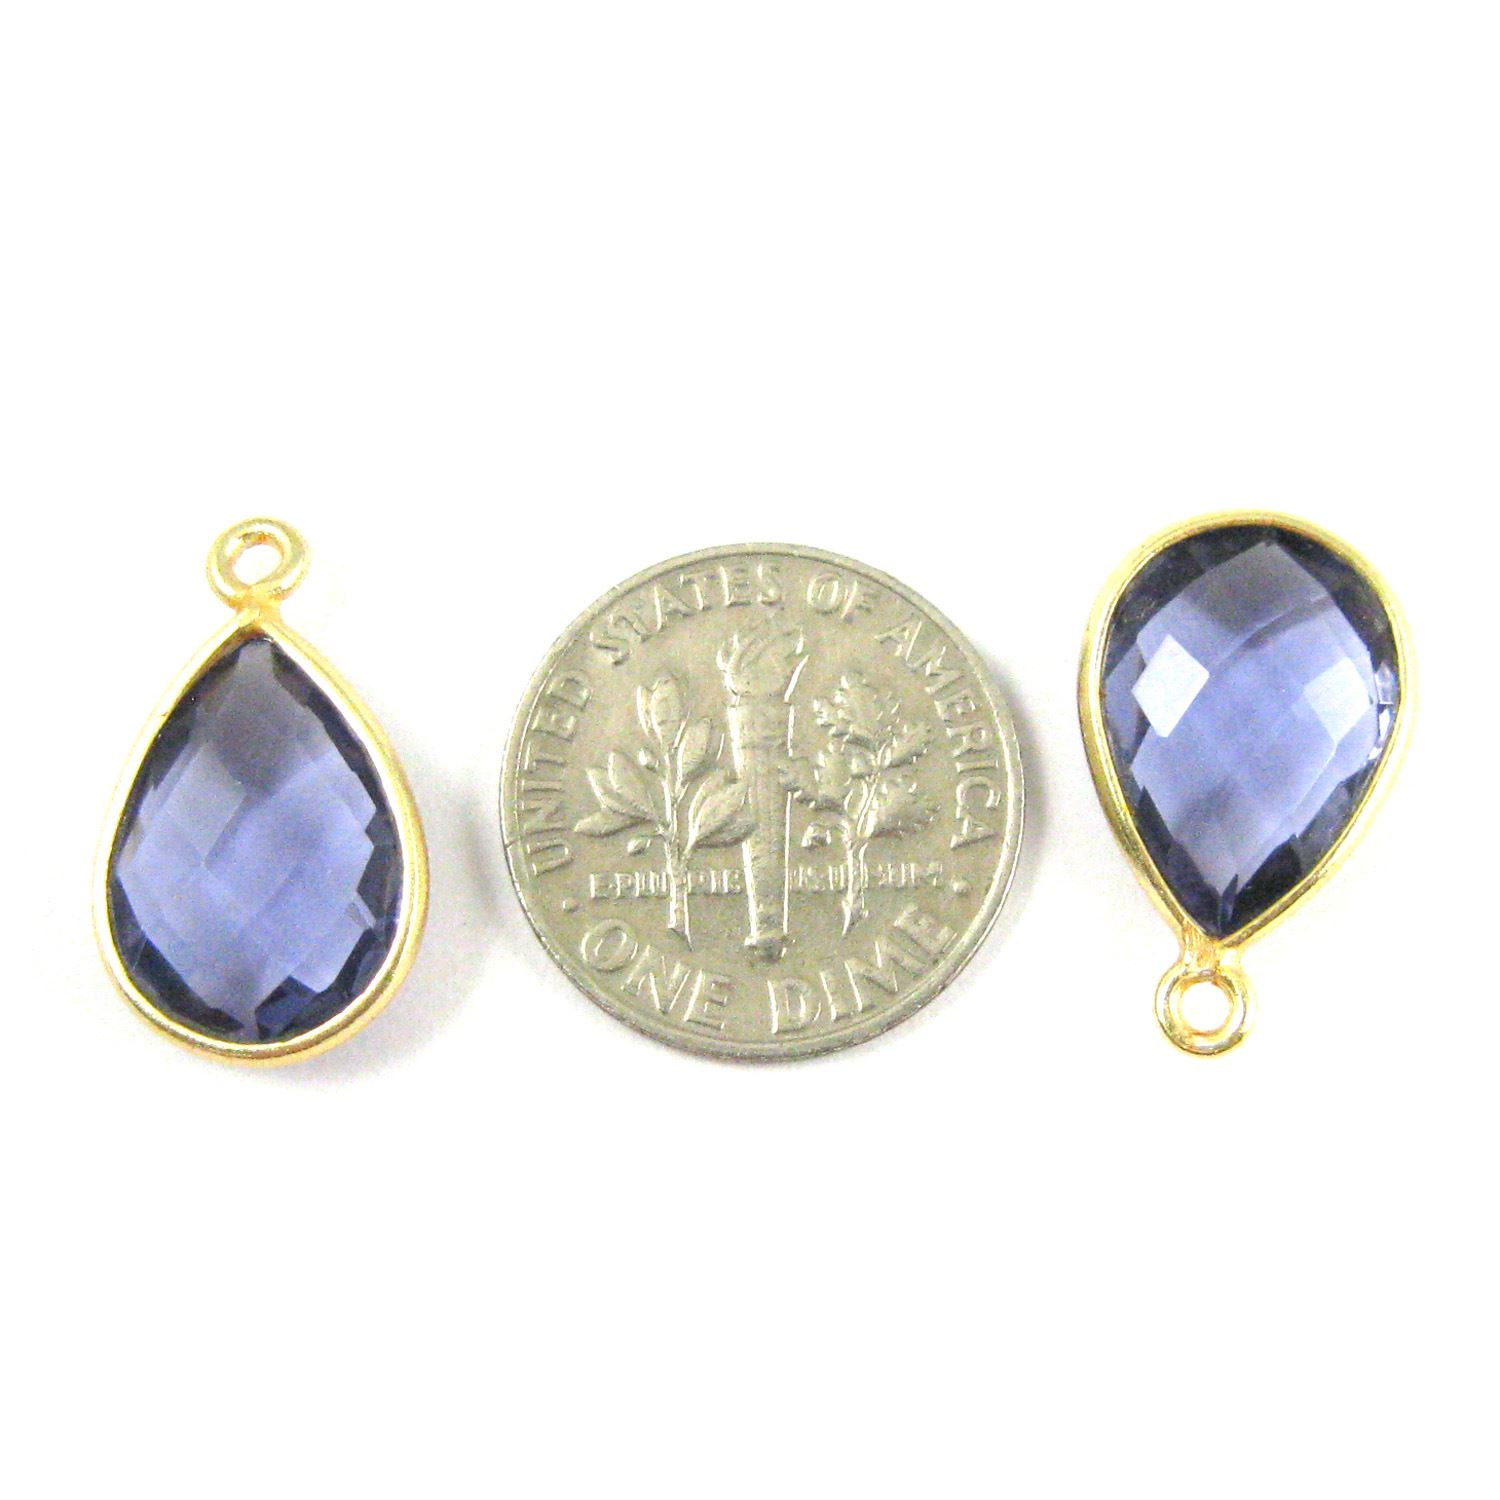 Bezel Gemstone Pendant - 10x14mm Faceted Small Teardop Shape - Iolite Quartz  (Sold per 2 pieces)